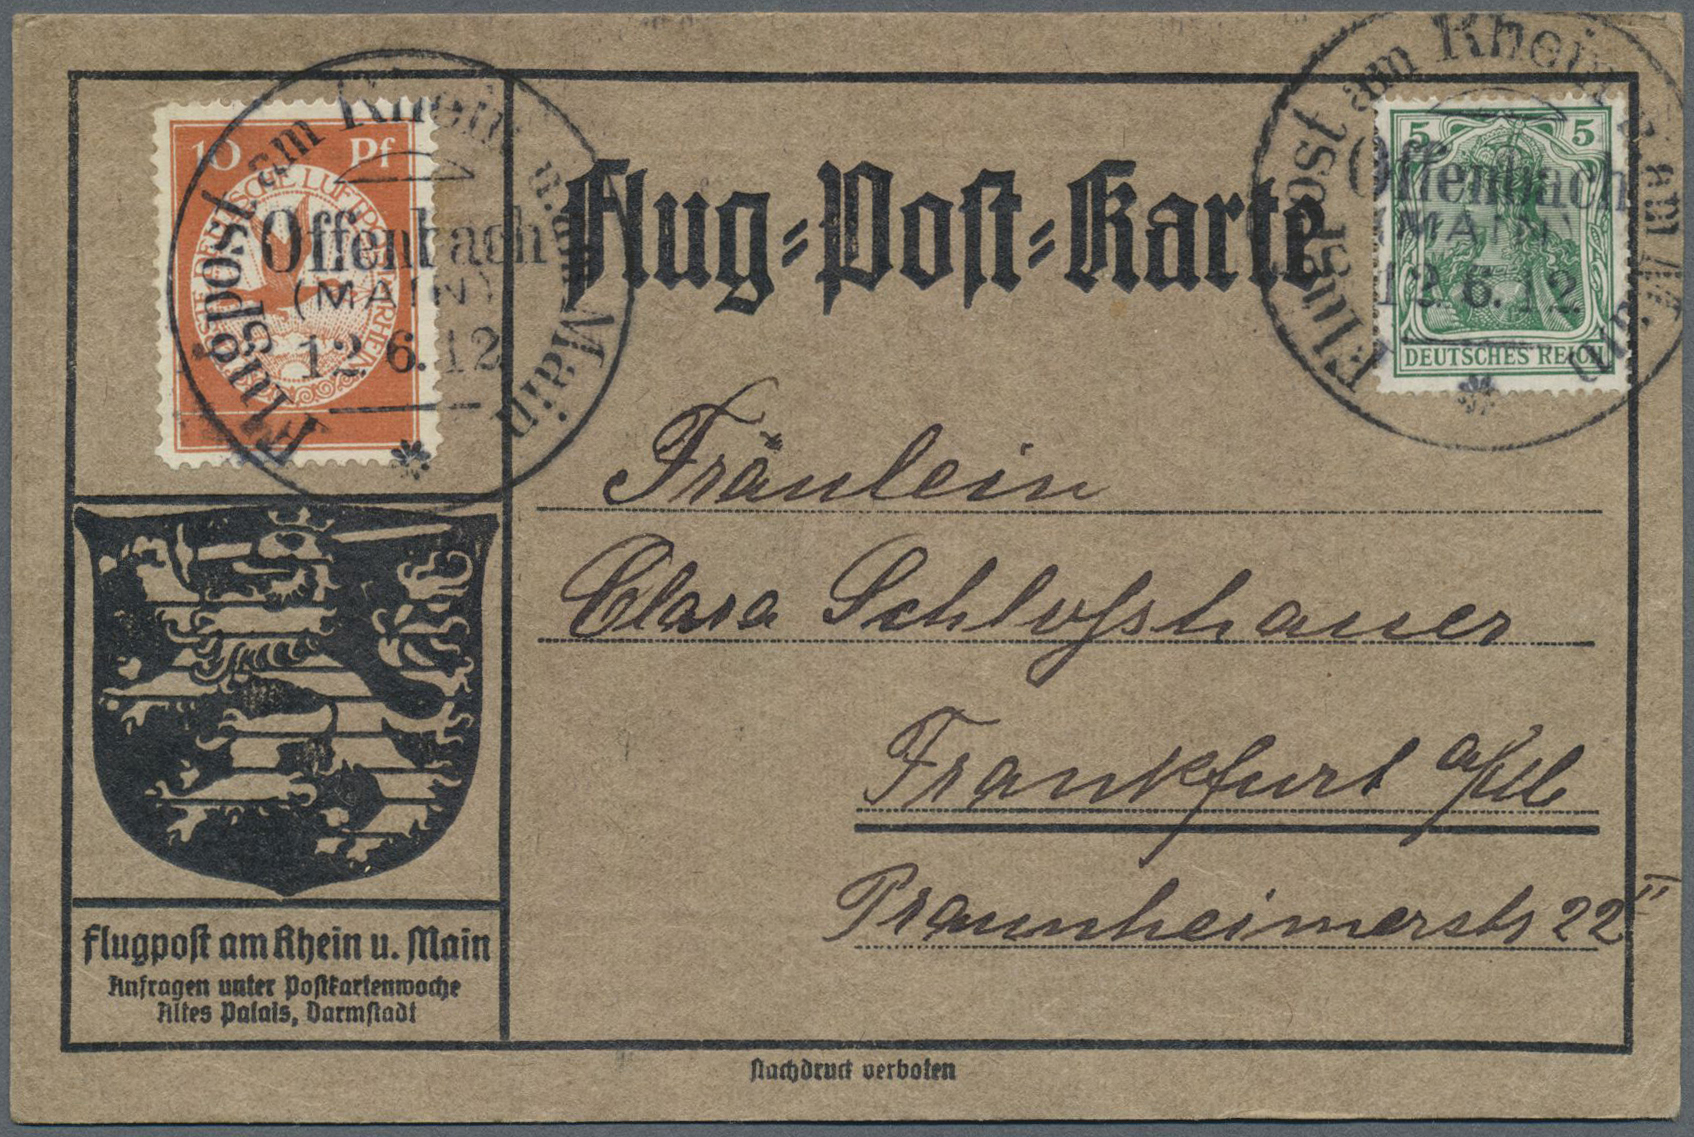 Lot 34221 - nachlässe  -  Auktionshaus Christoph Gärtner GmbH & Co. KG Collections Germany,  Collections Supplement, Surprise boxes #39 Day 7